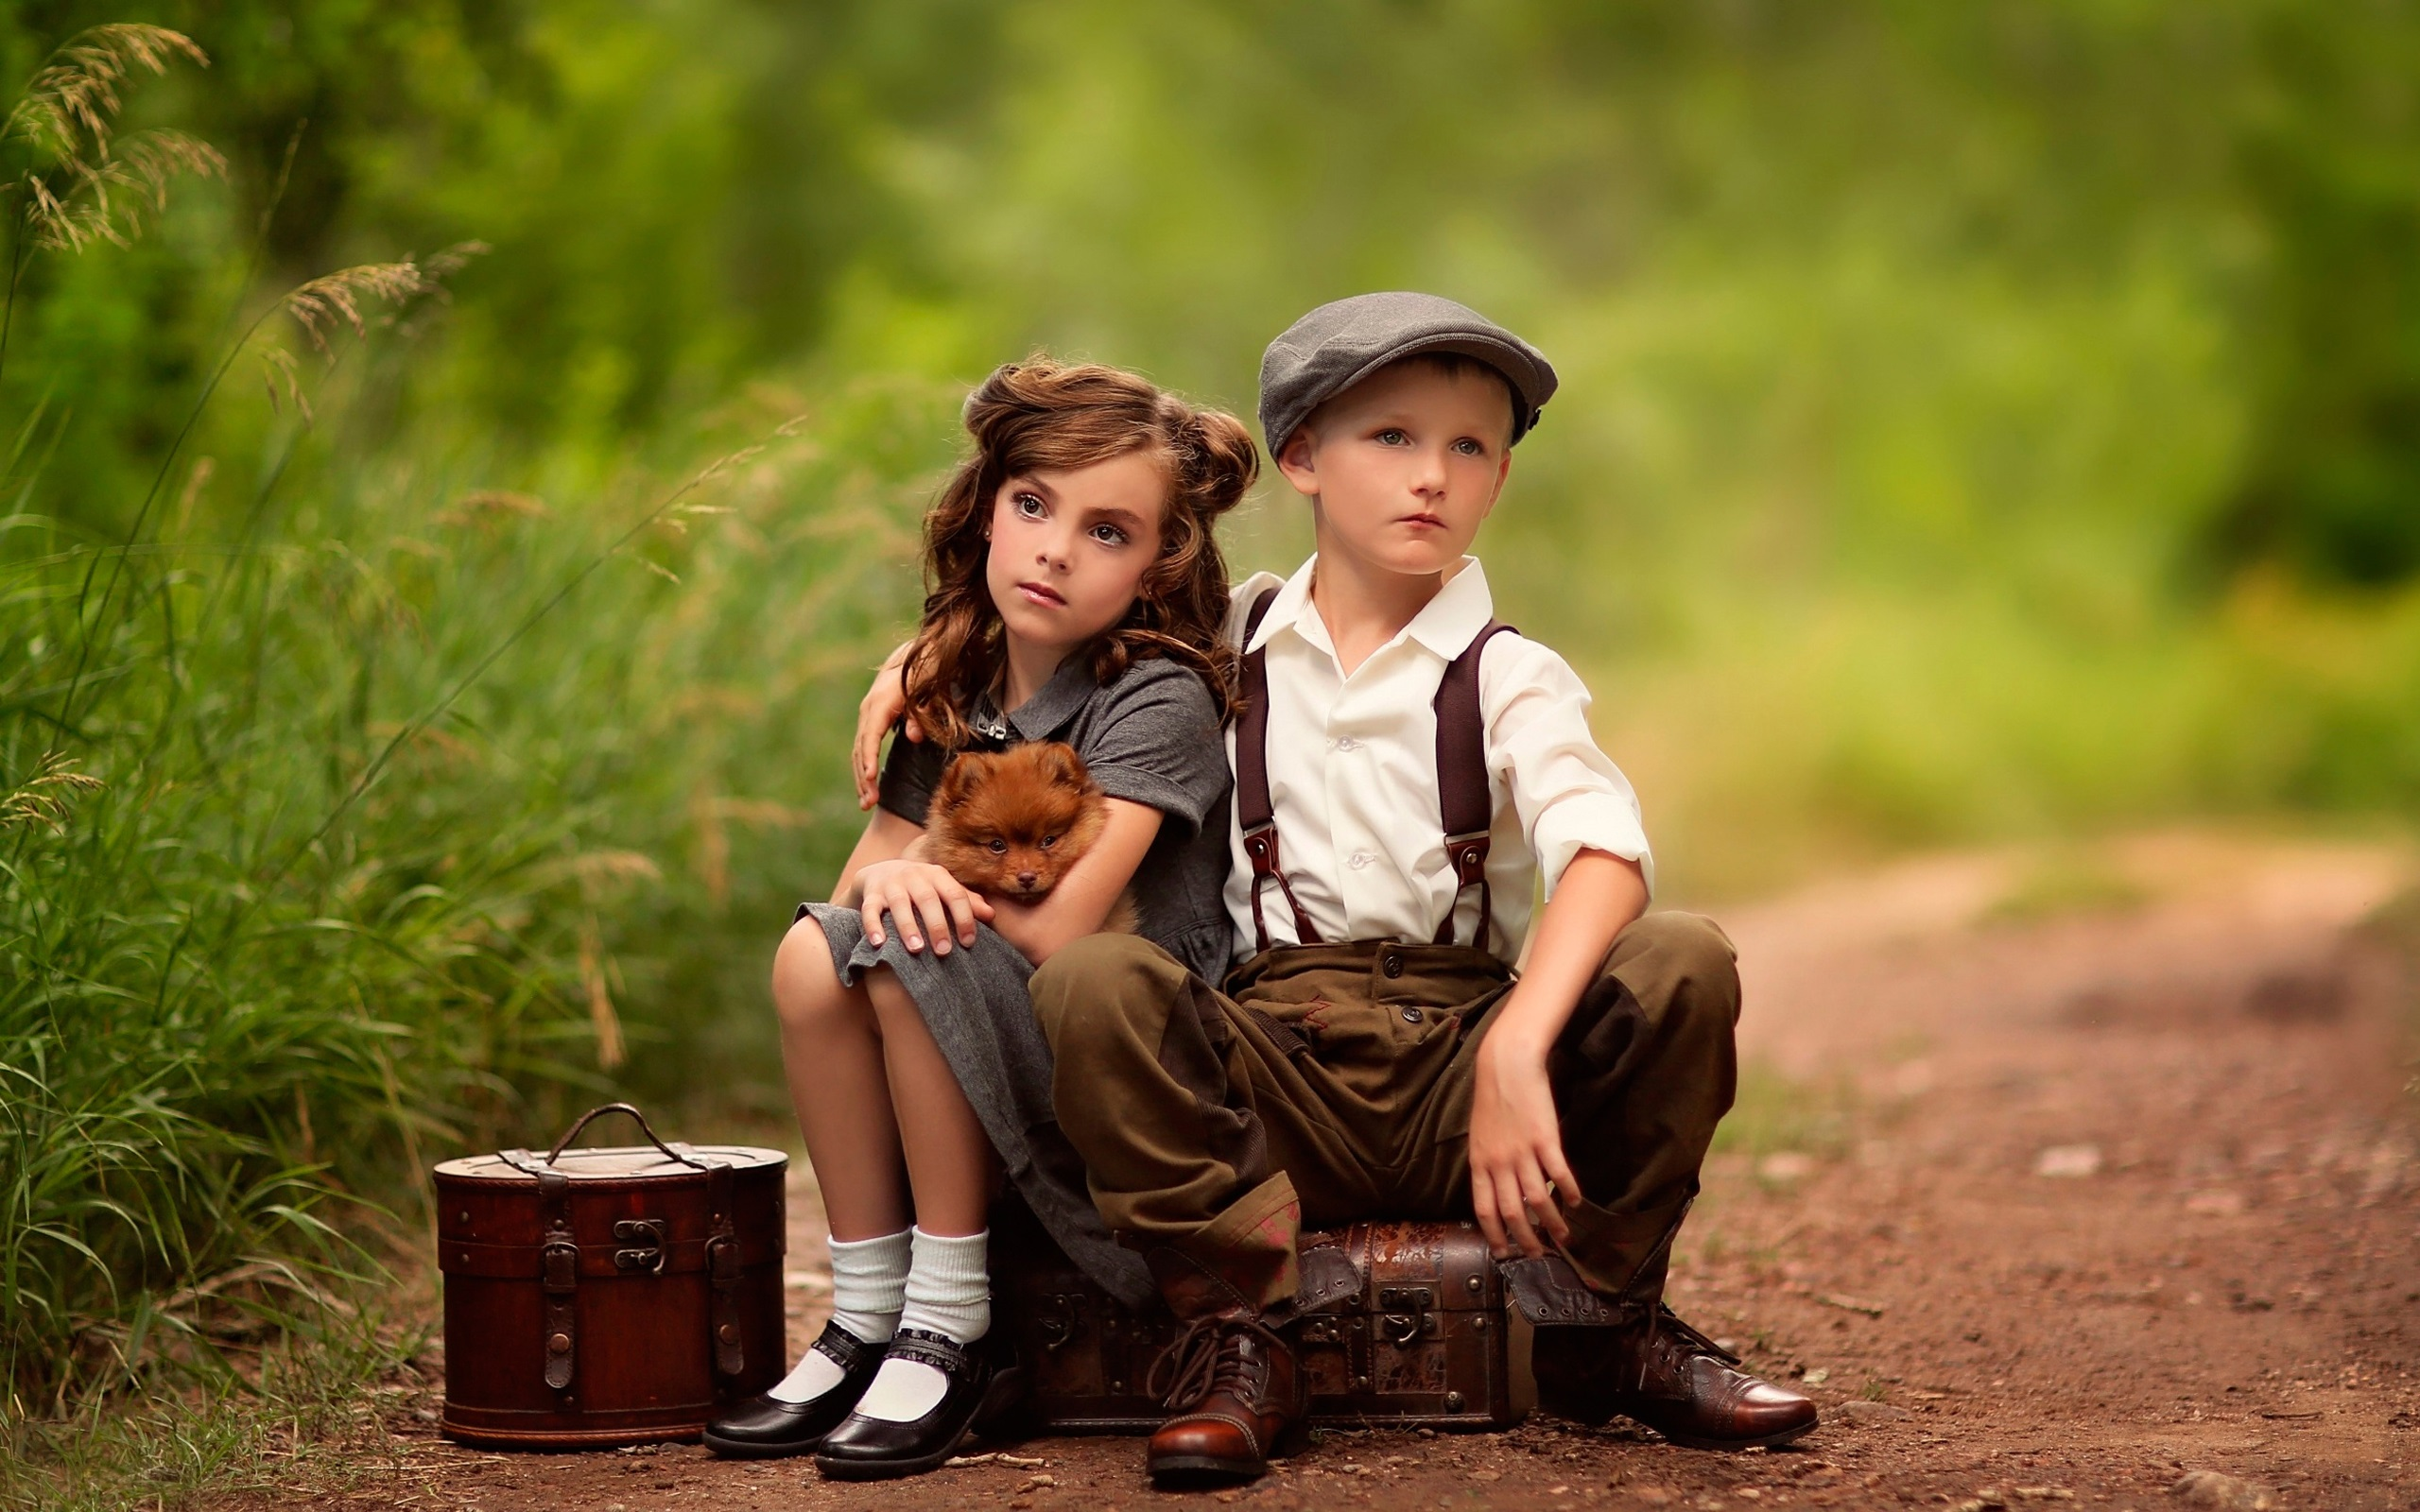 boy and girls wallpaper  Wallpaper Cute child, girl, boy, dog, suitcases, waiting 2560x1600 ...